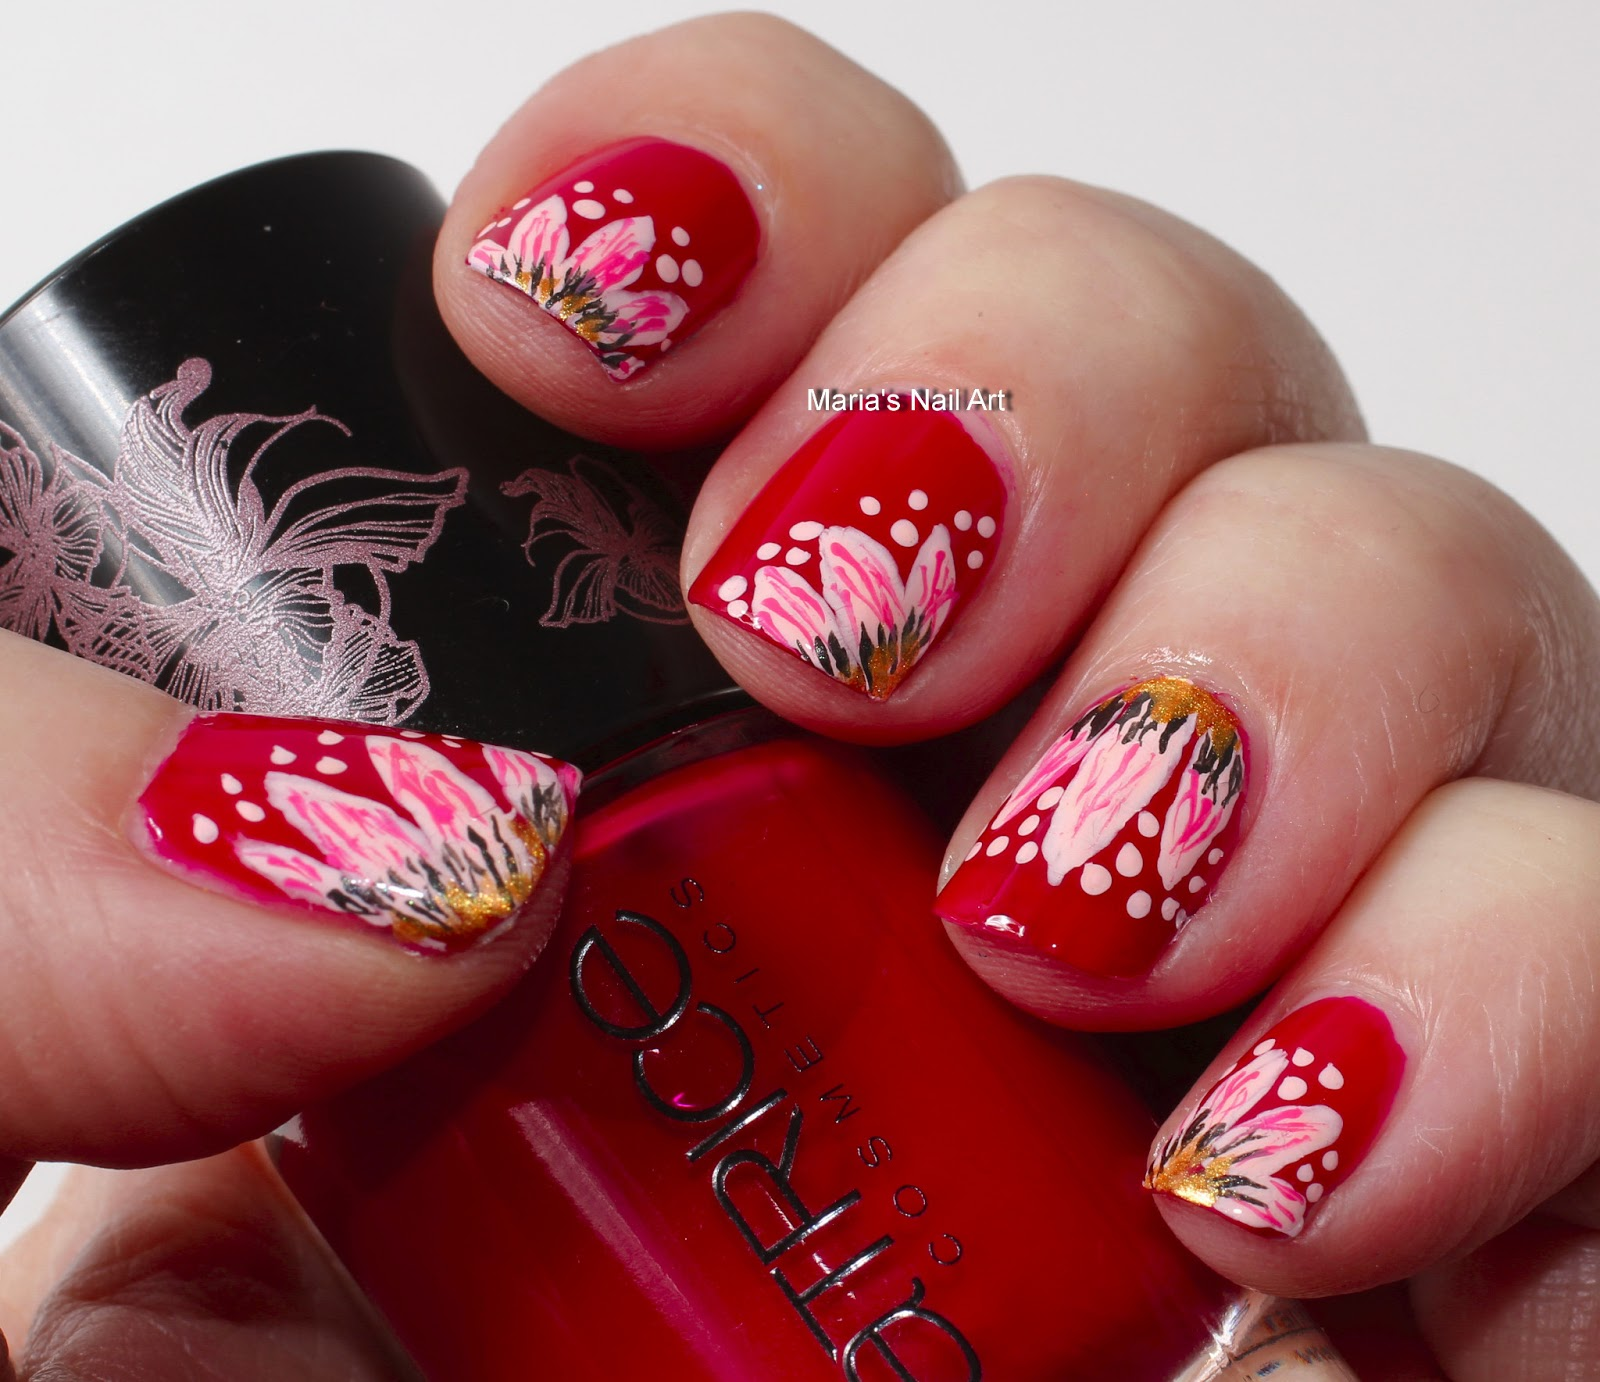 Red Nail Art: Marias Nail Art And Polish Blog: Pink Flowers For The Red